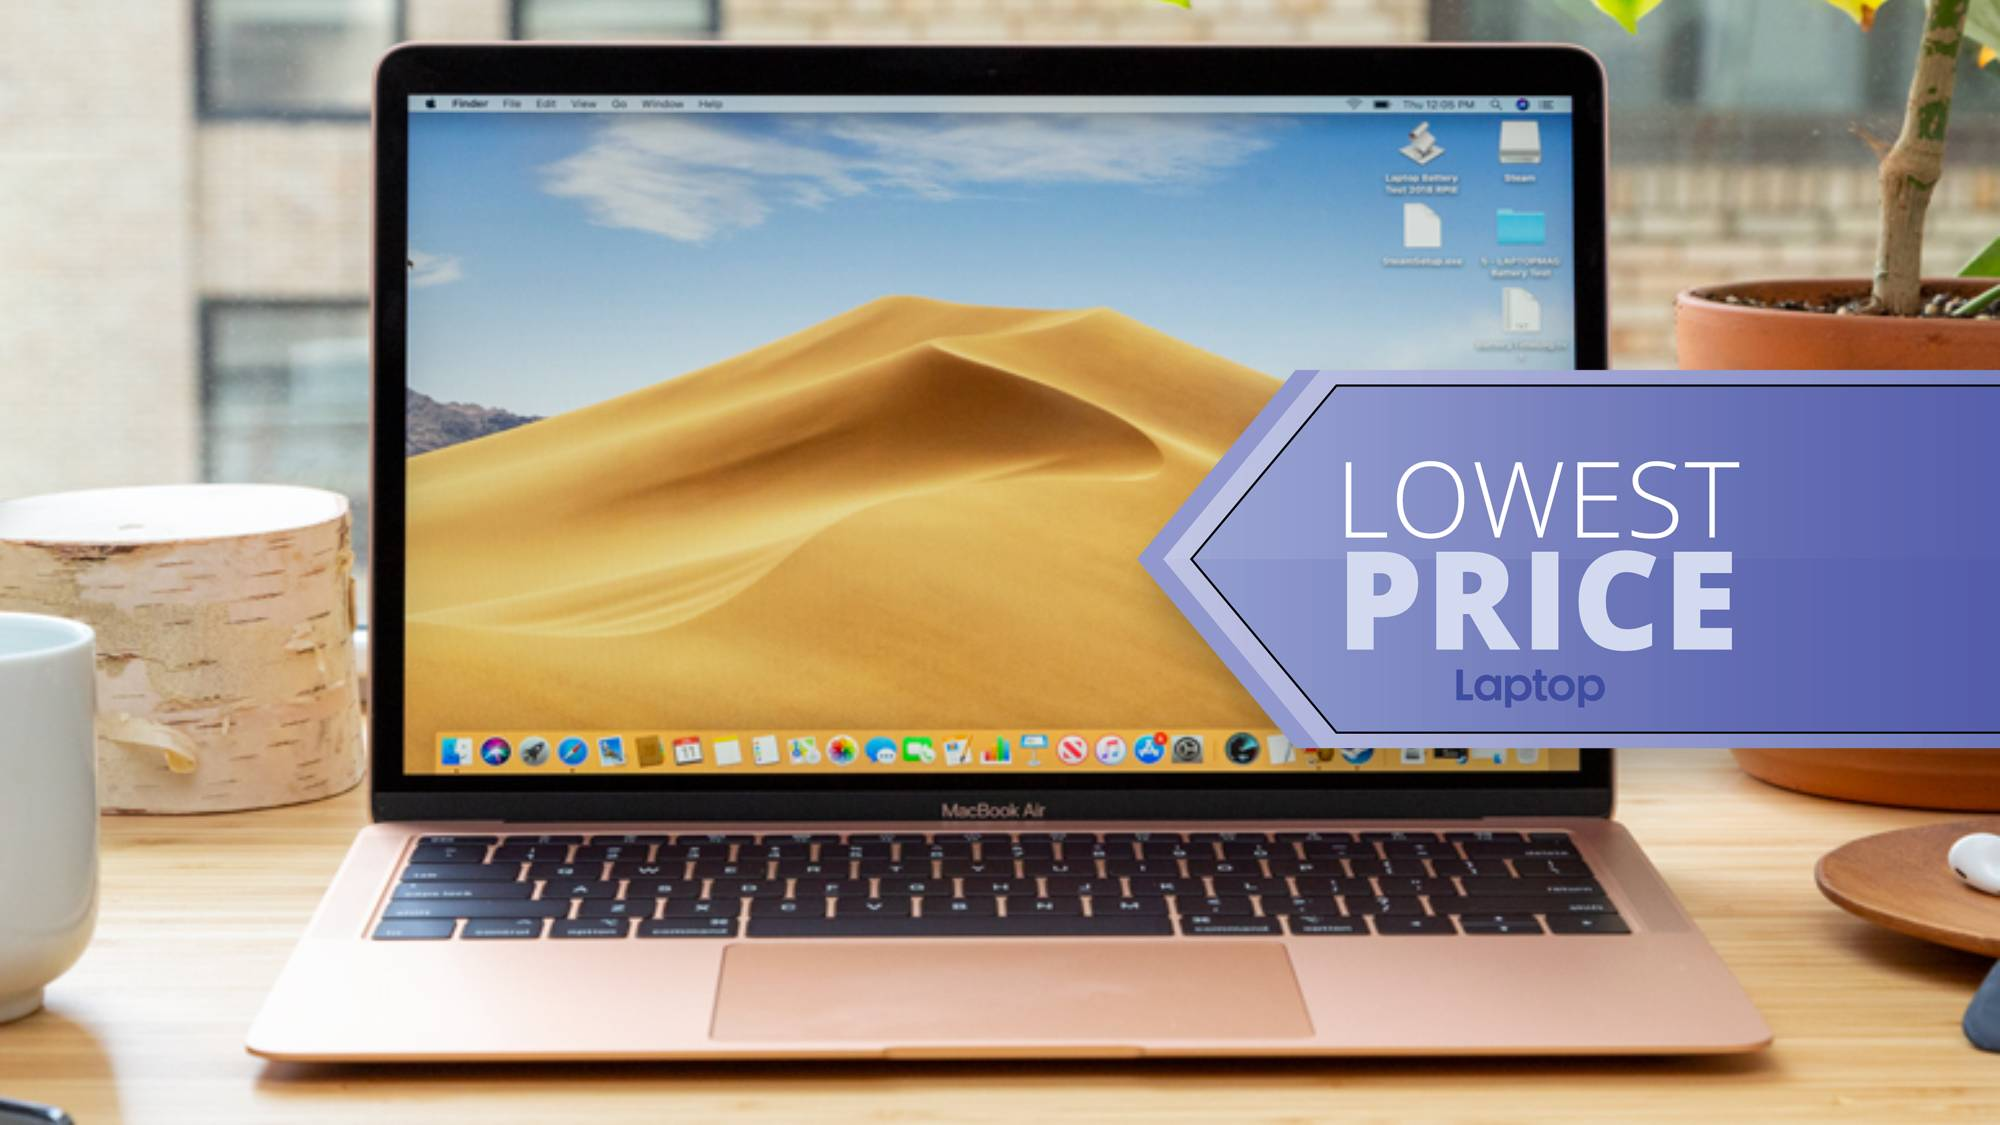 Macbook Air 2019 Now 350 Off In Laptop Deal Laptop Mag